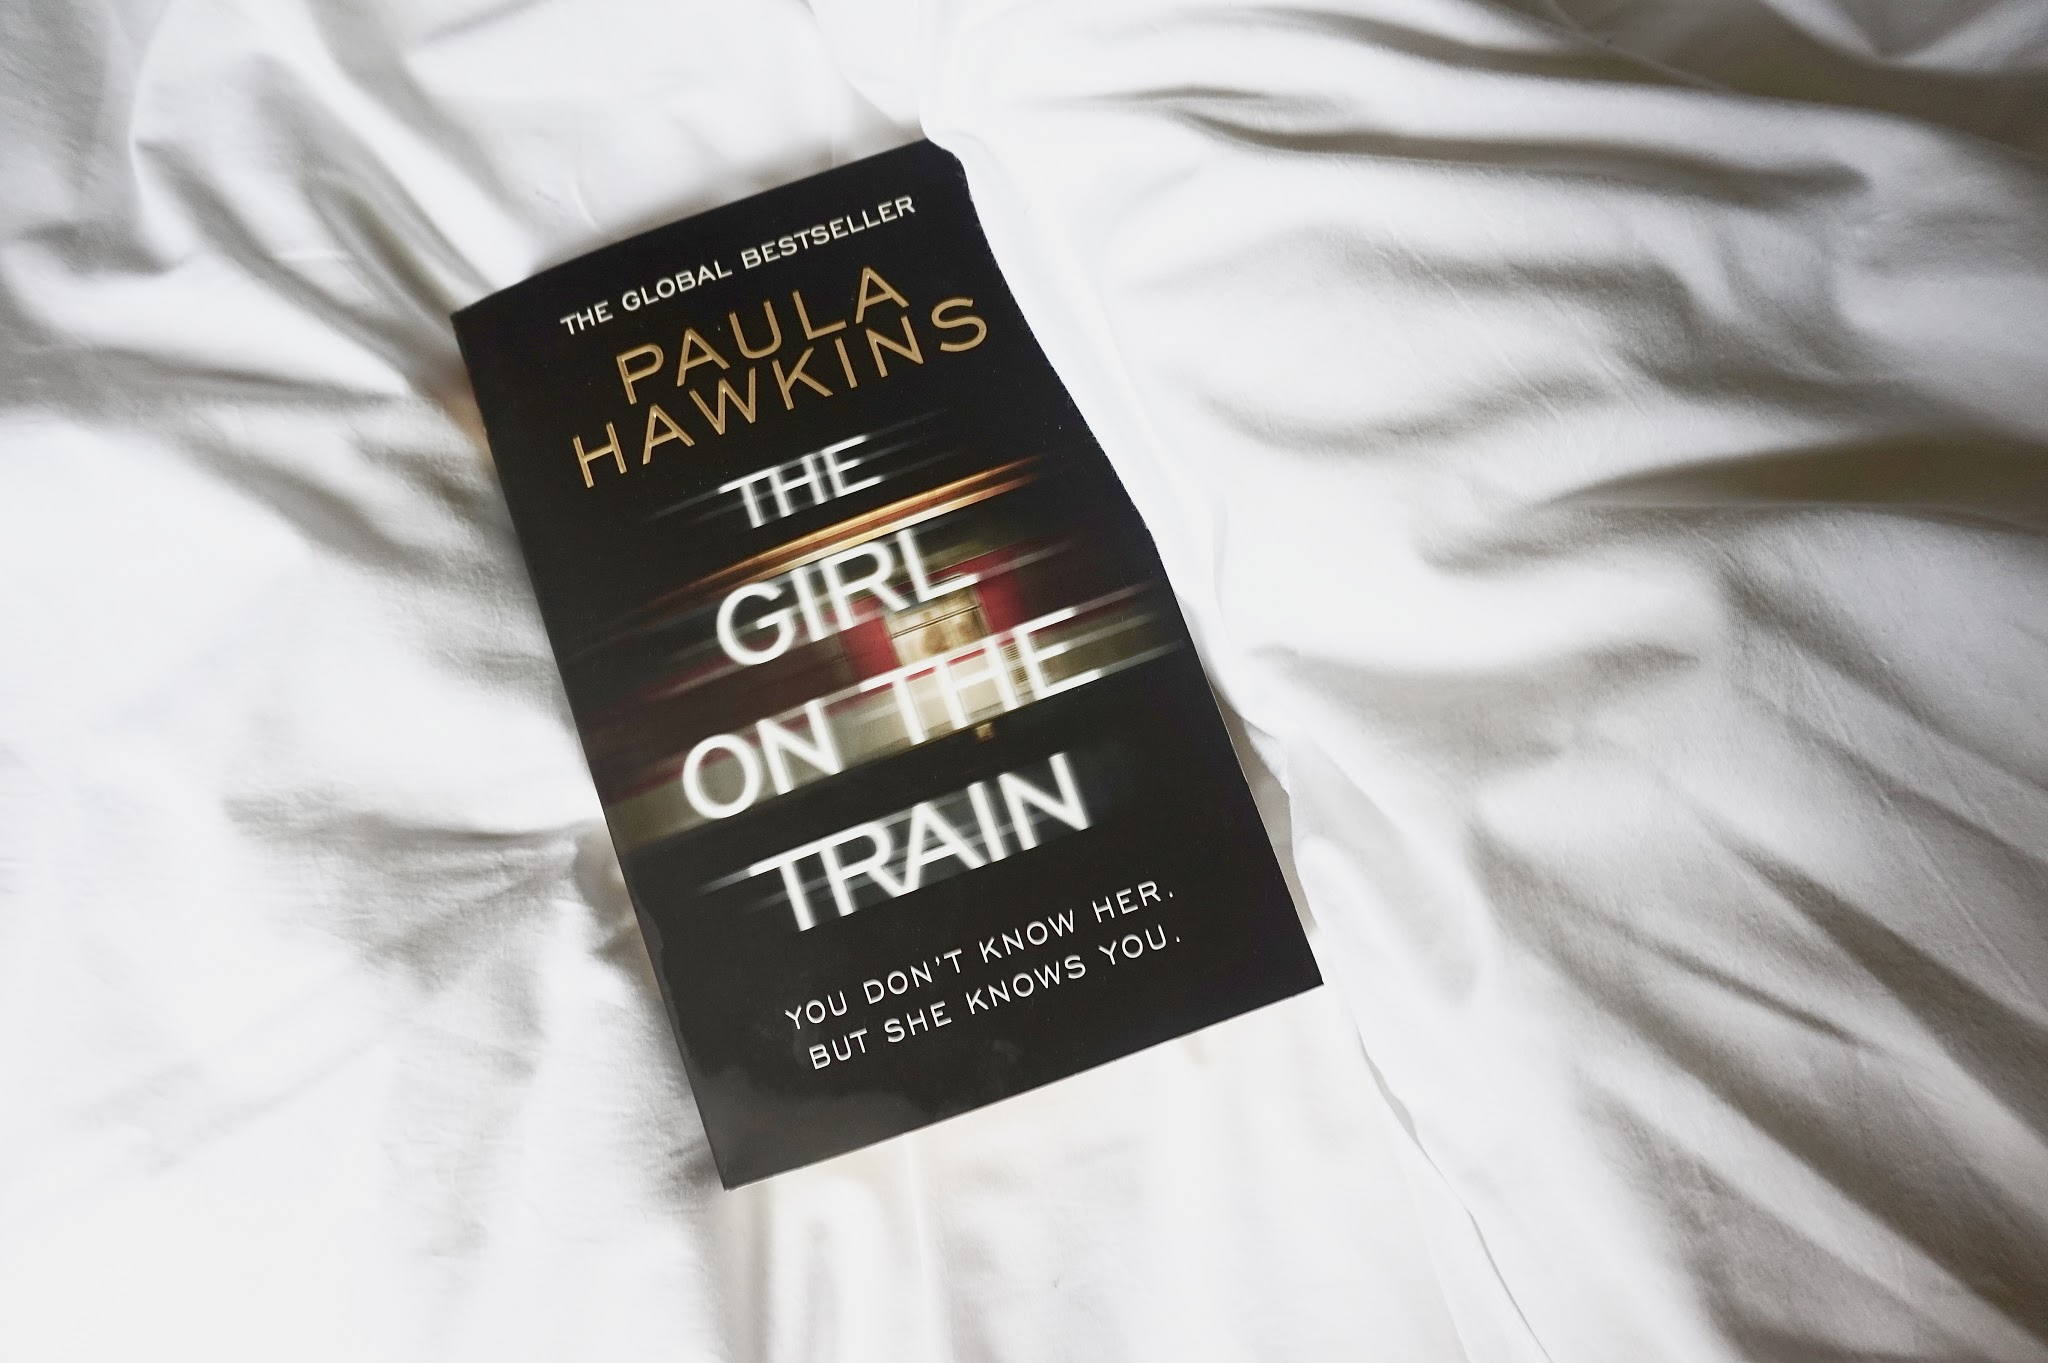 The Girl on the Train book on white bed